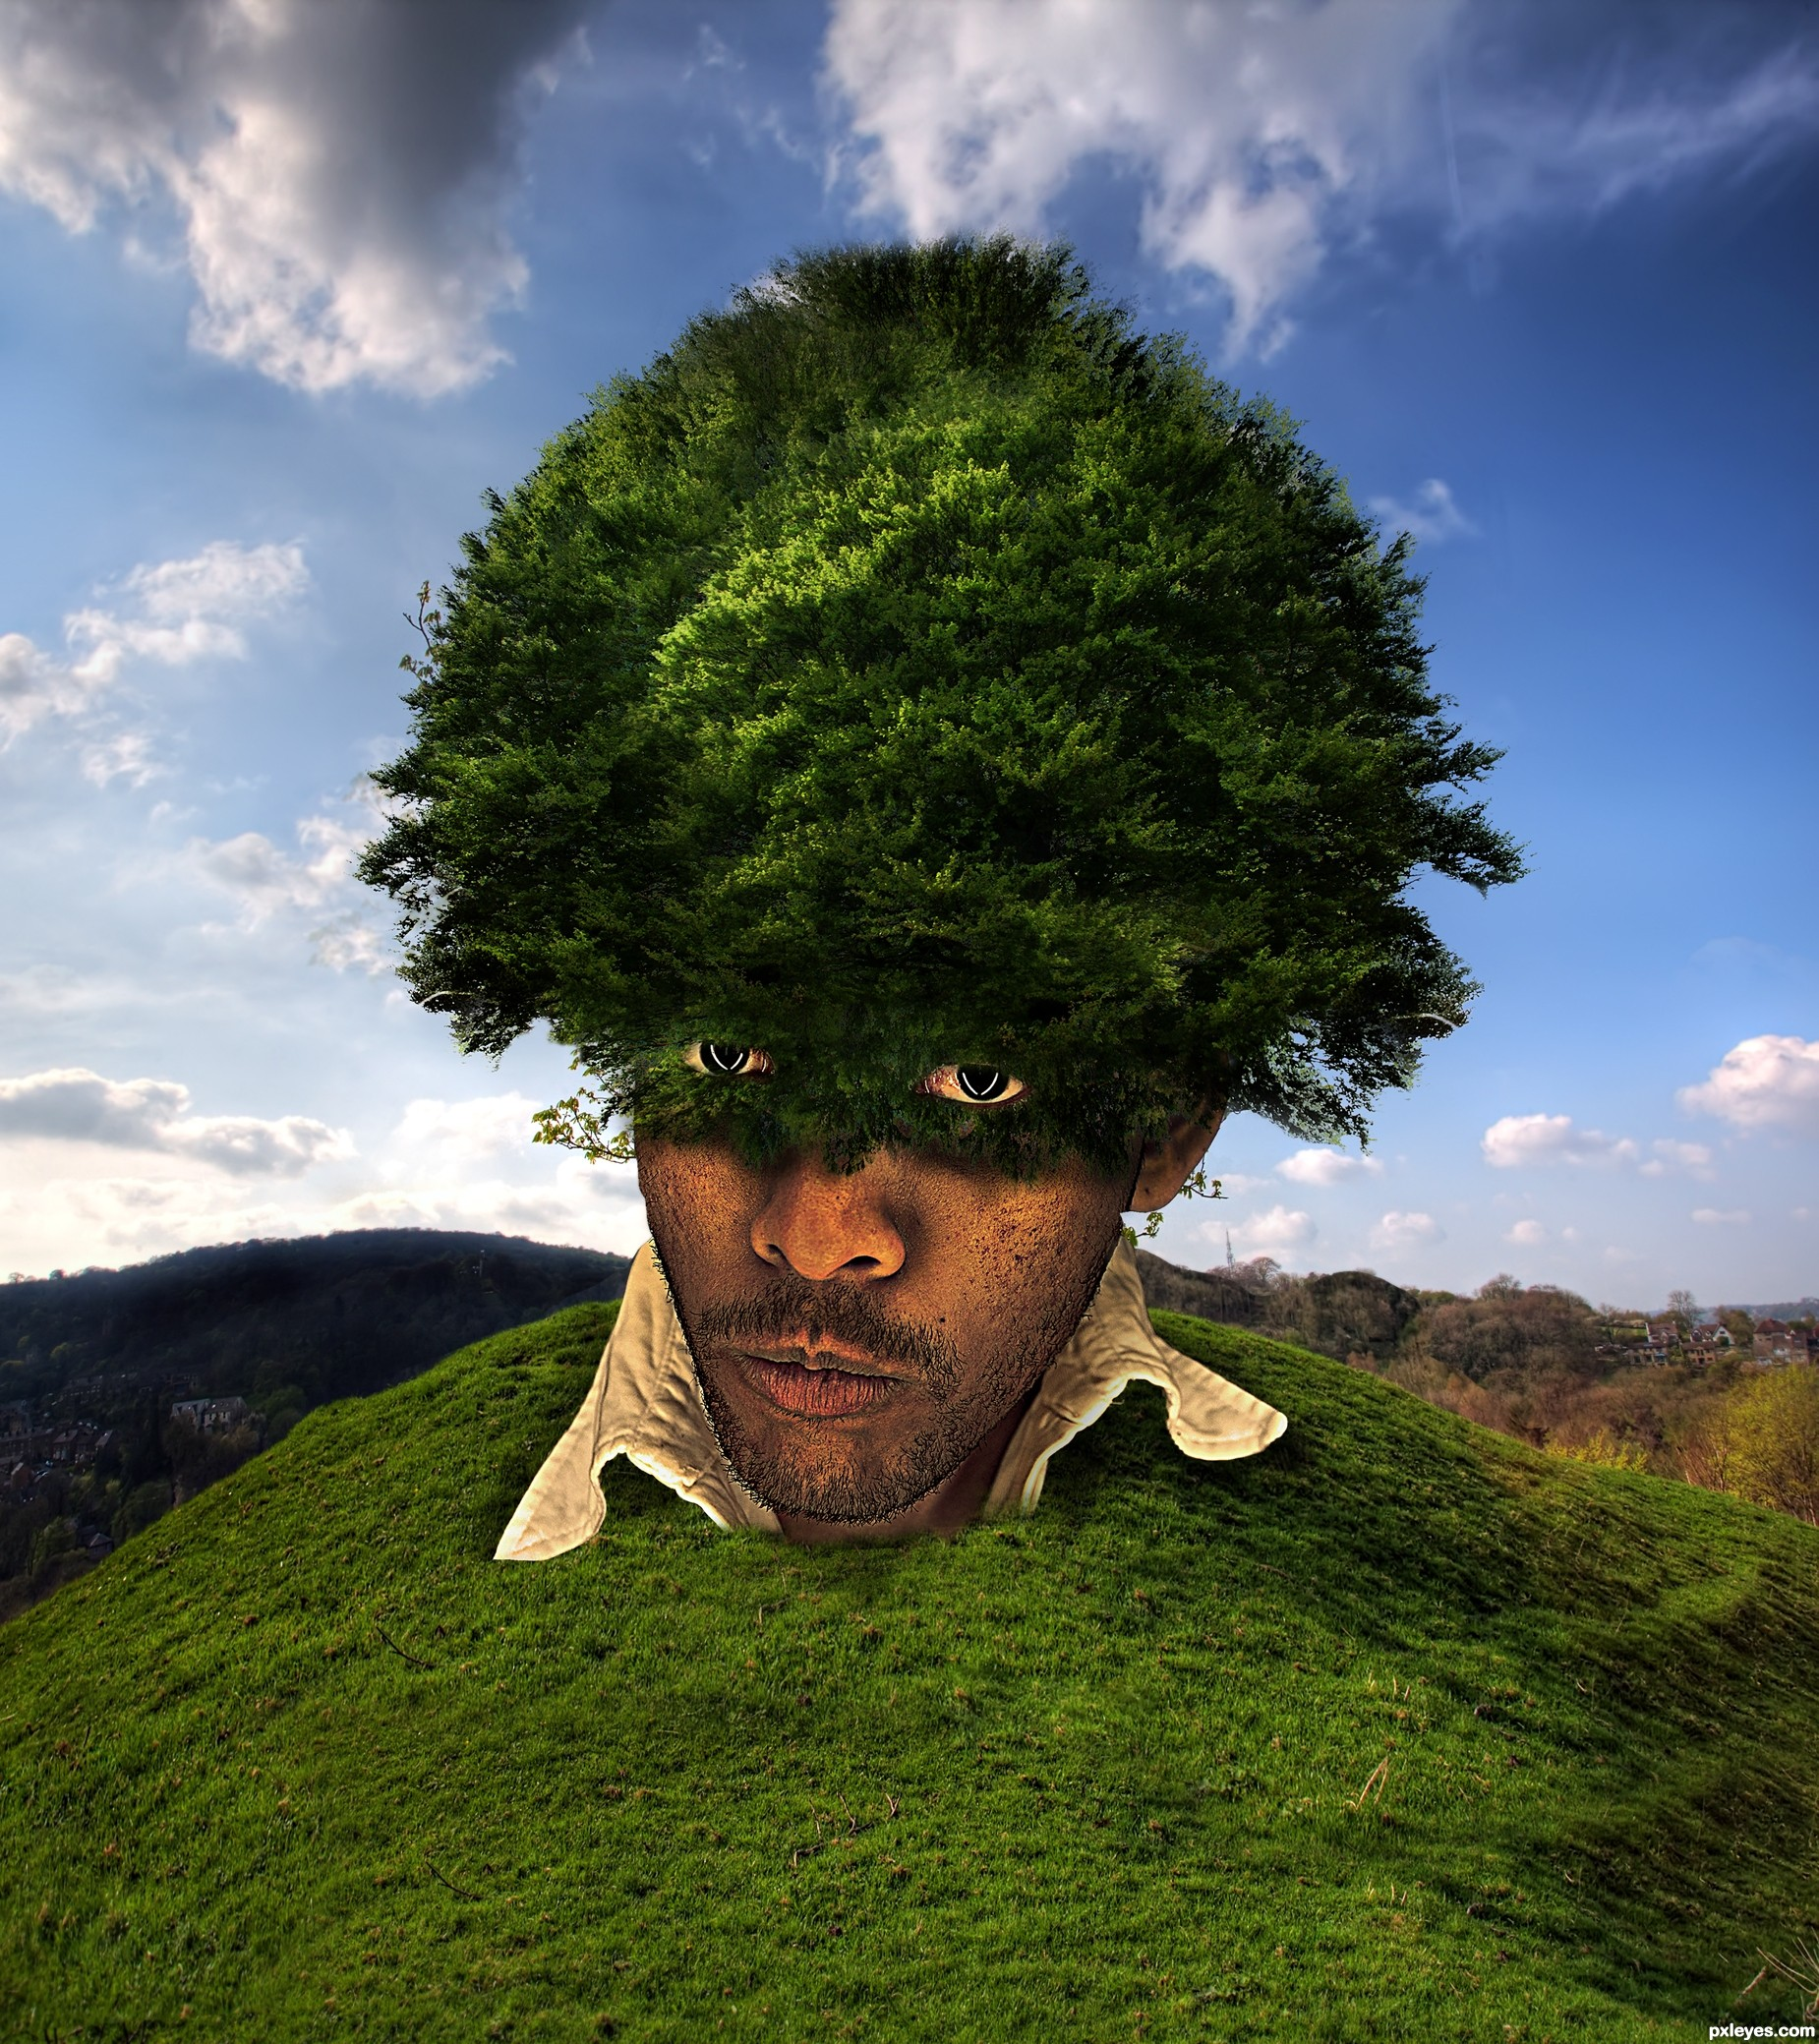 The Big Tree picture, by lolu for: i was a tree photoshop contest ...